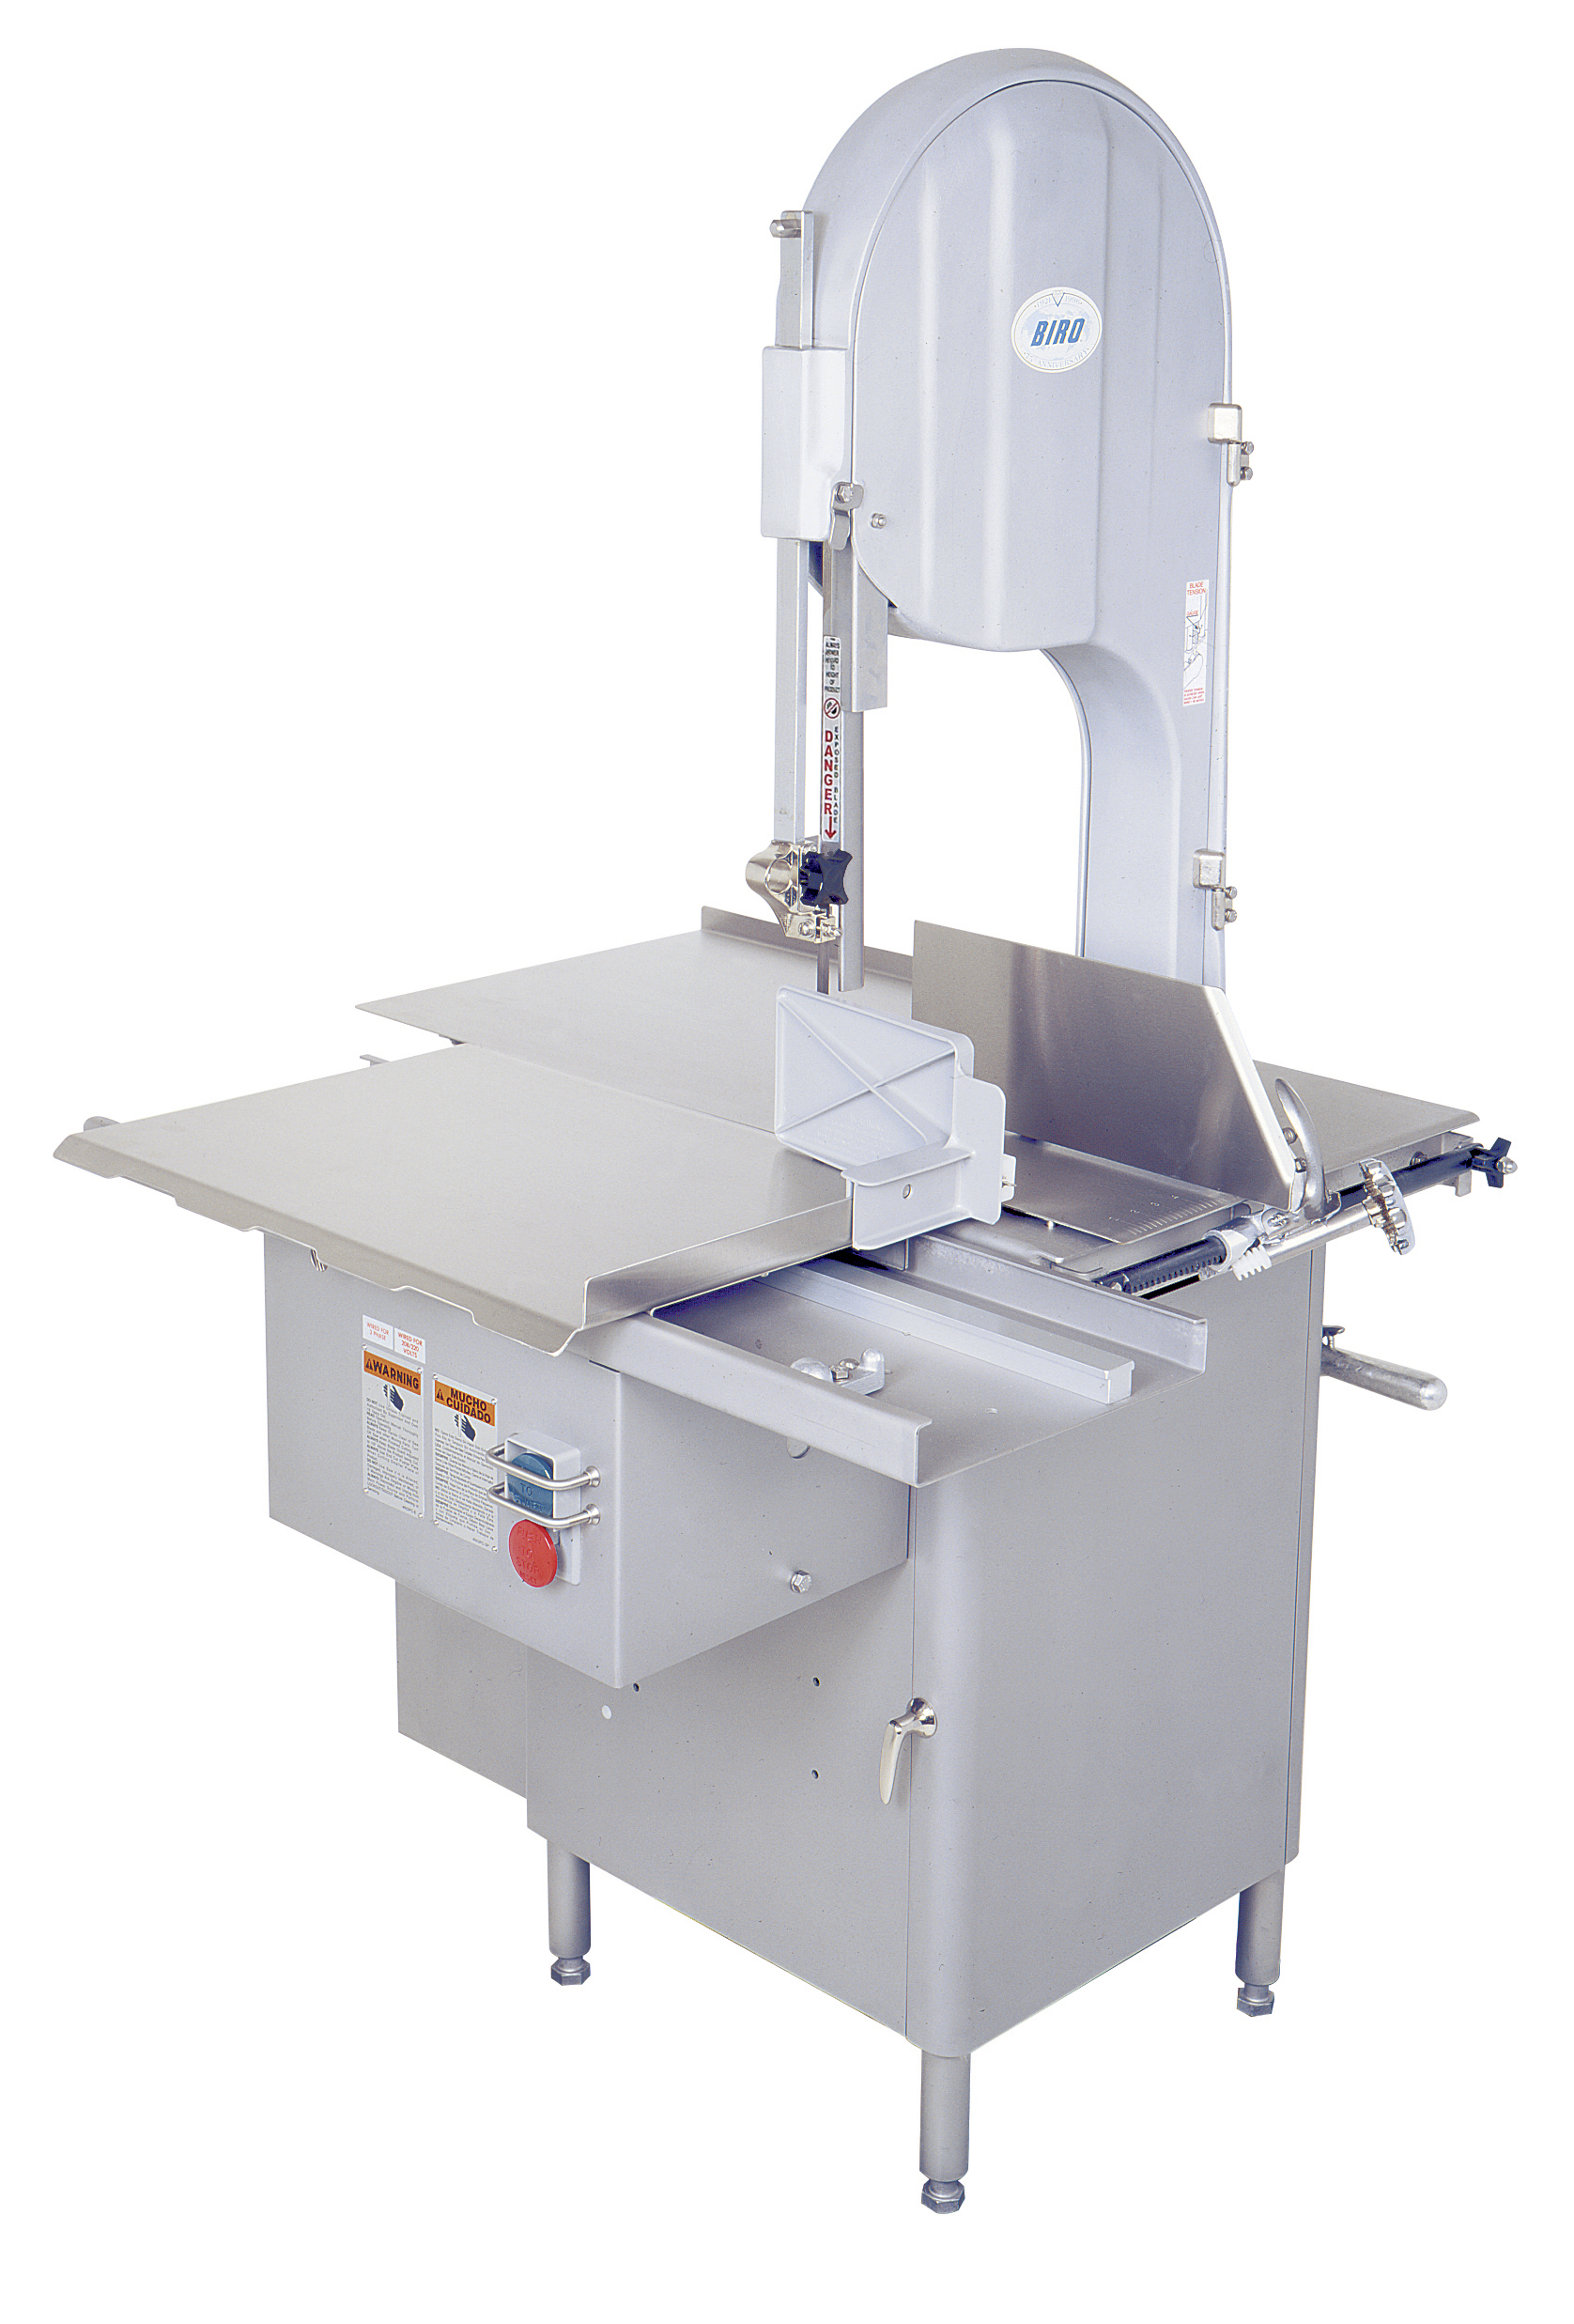 Model 3334ss 4003 meat saw biro manufacturing model 3334ss 4003 greentooth Image collections